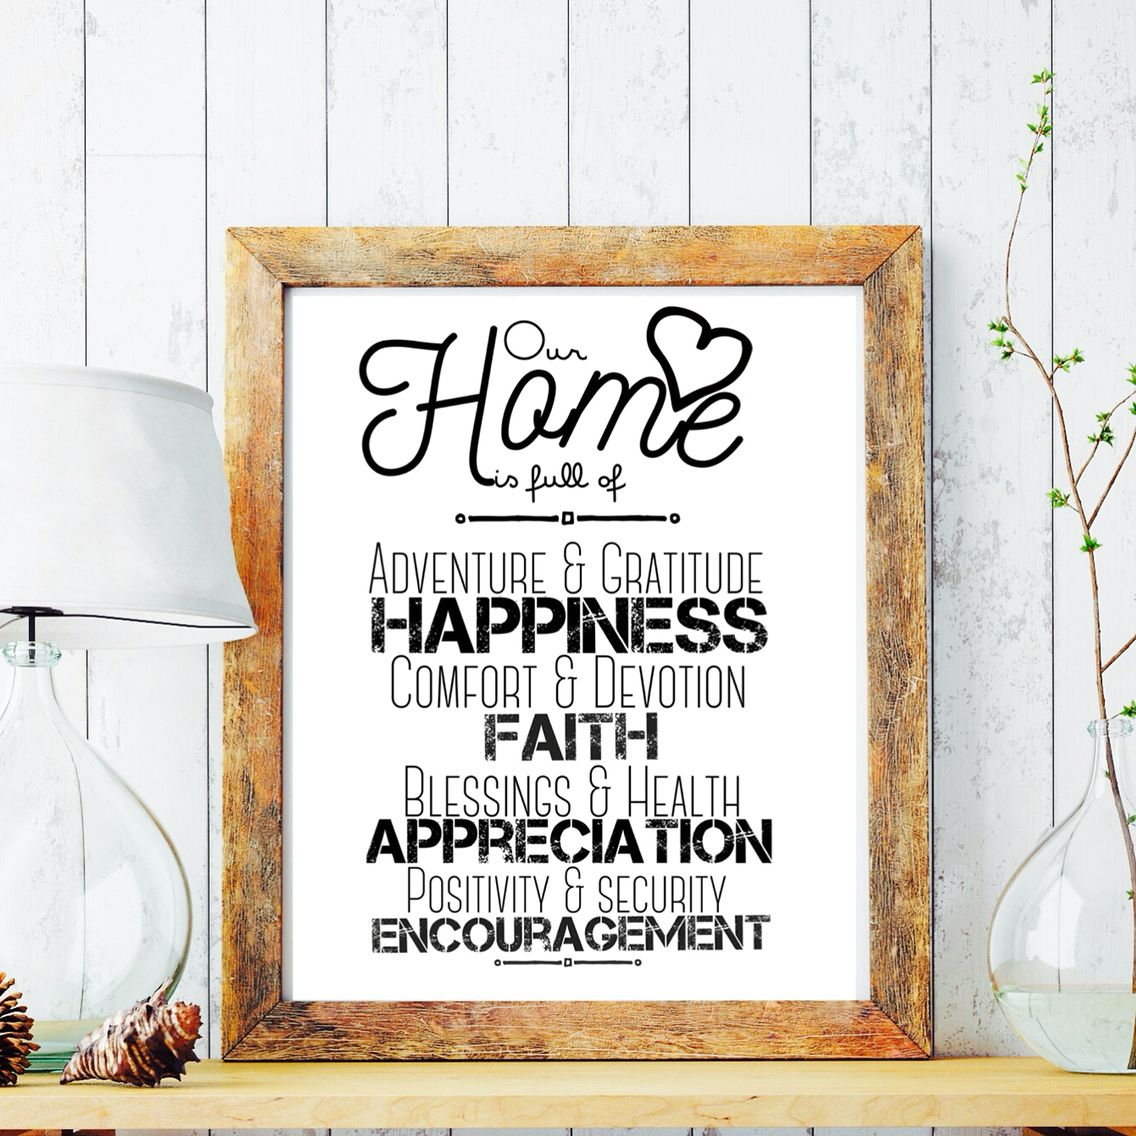 Inspirational Quotes For Home Decor - talentneeds.com